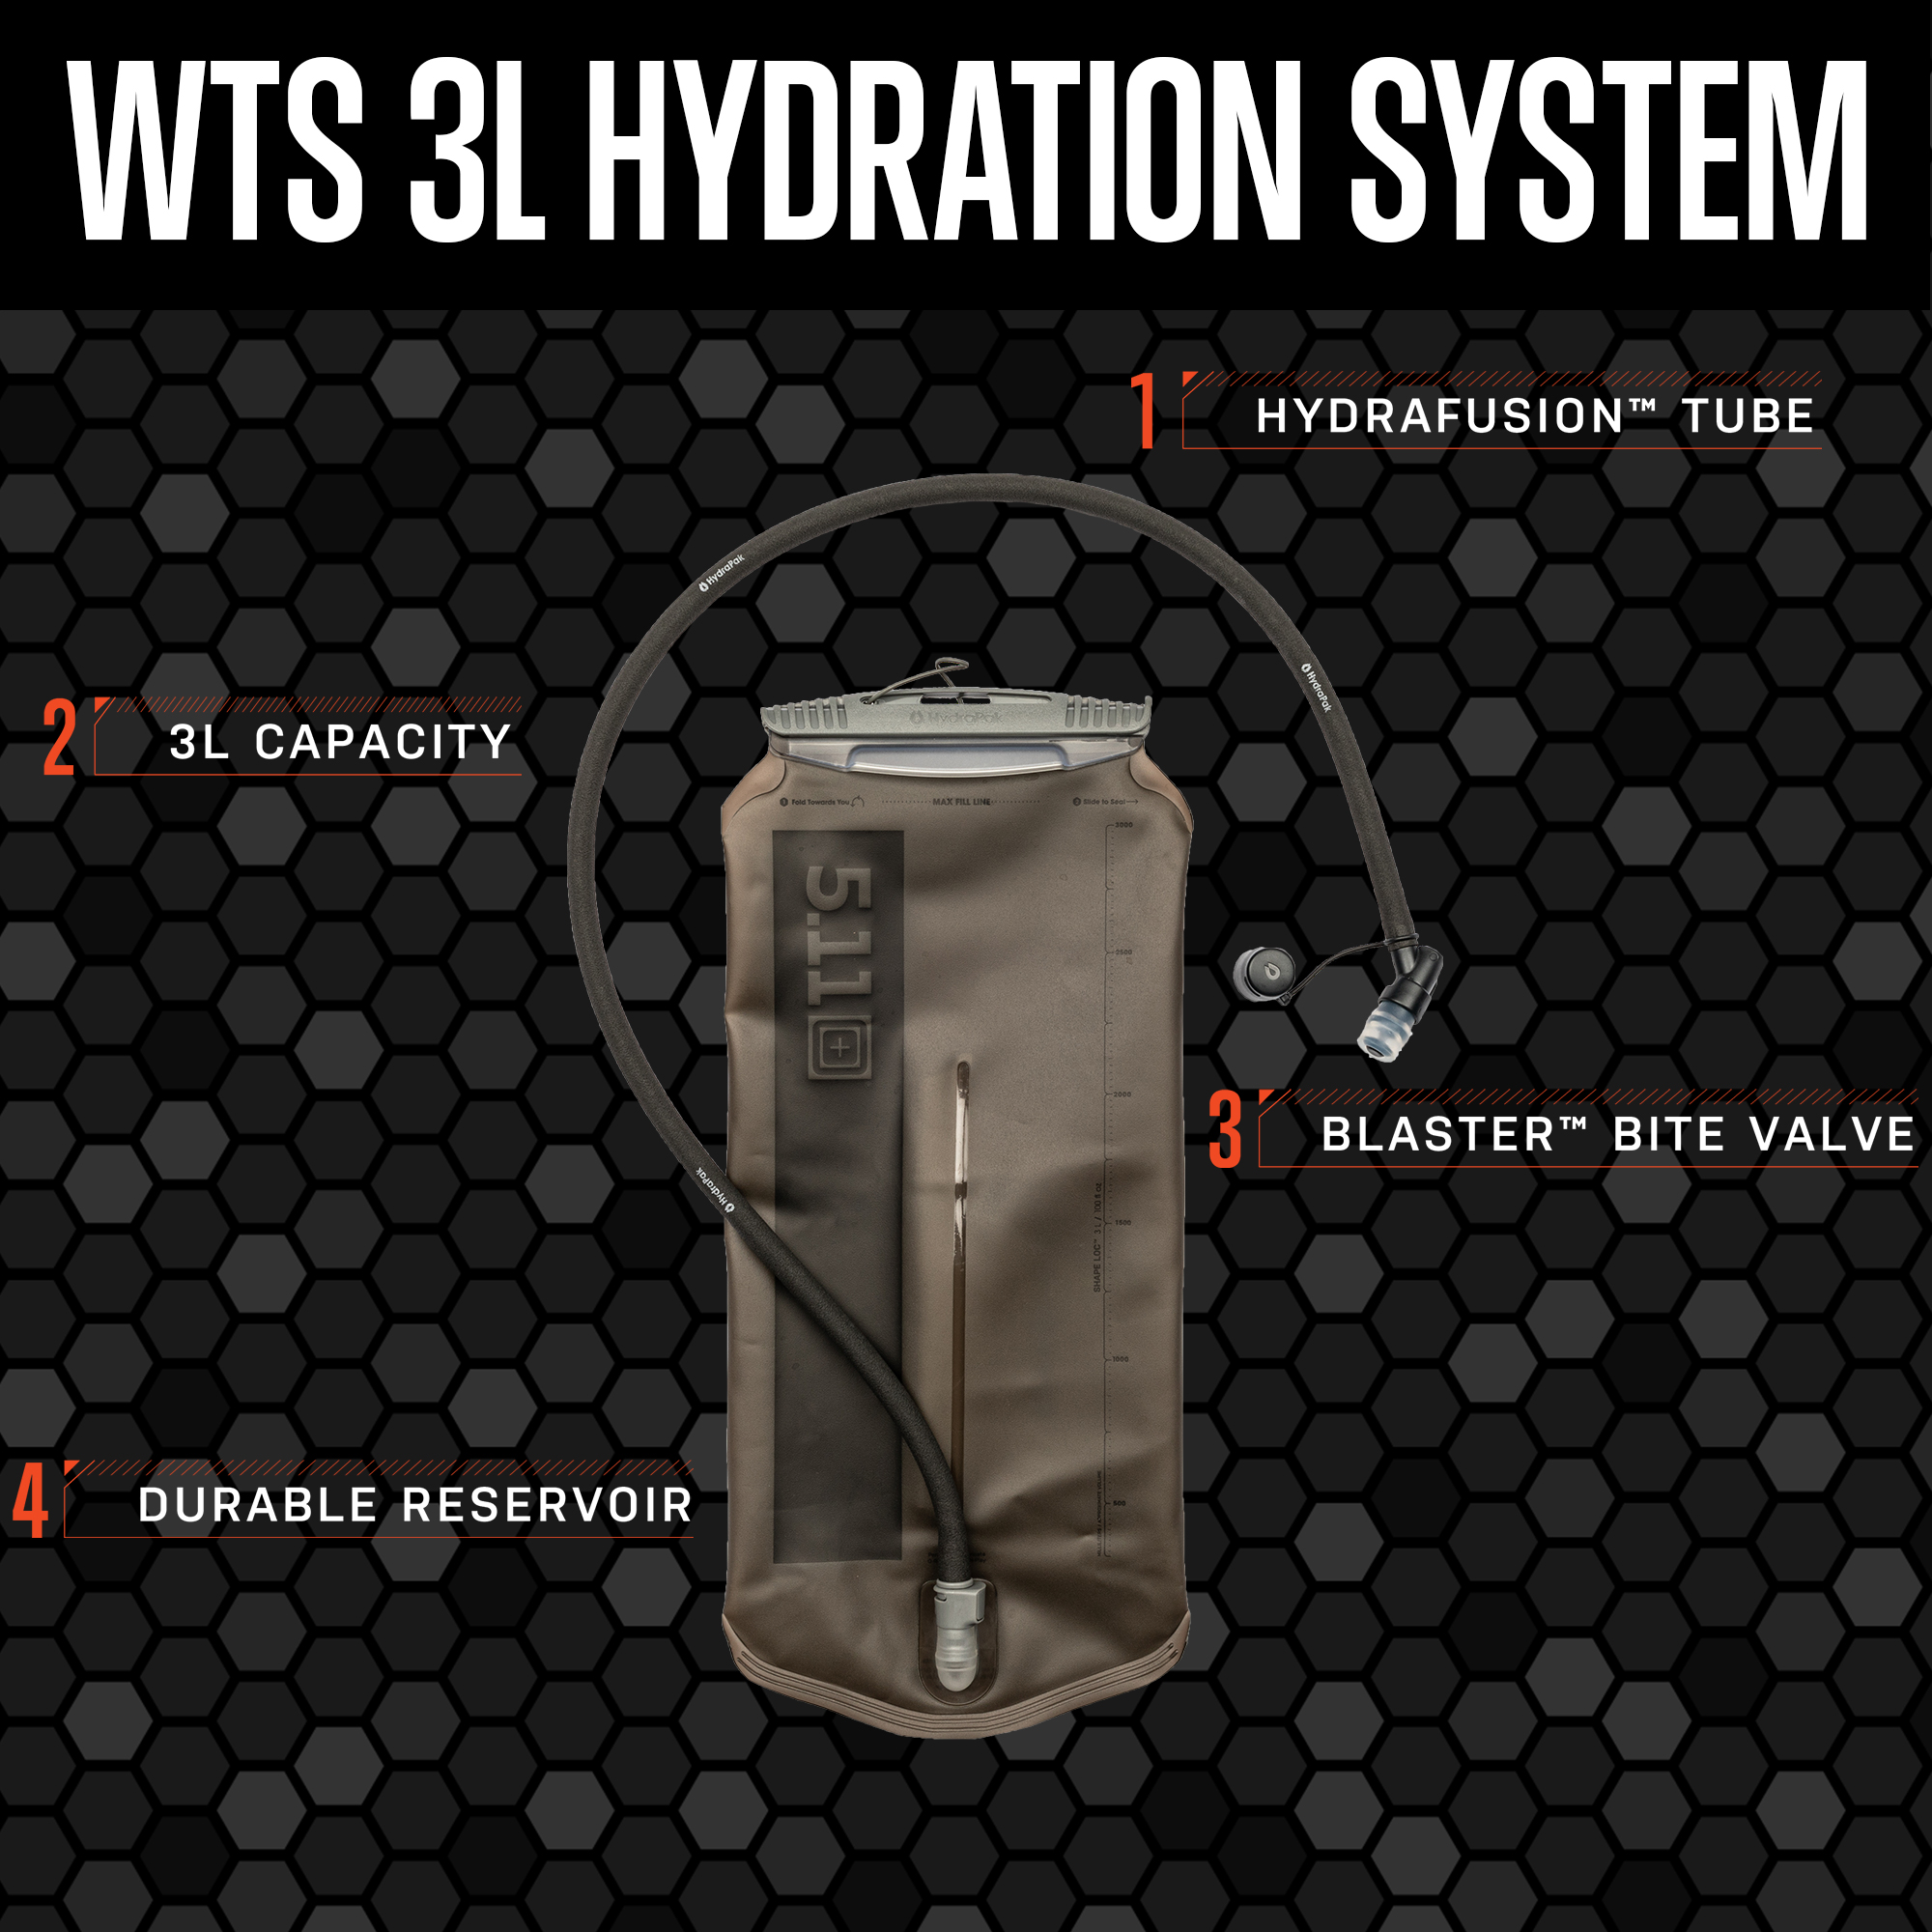 5.11 Introduces the New WTS 3L Hydration System